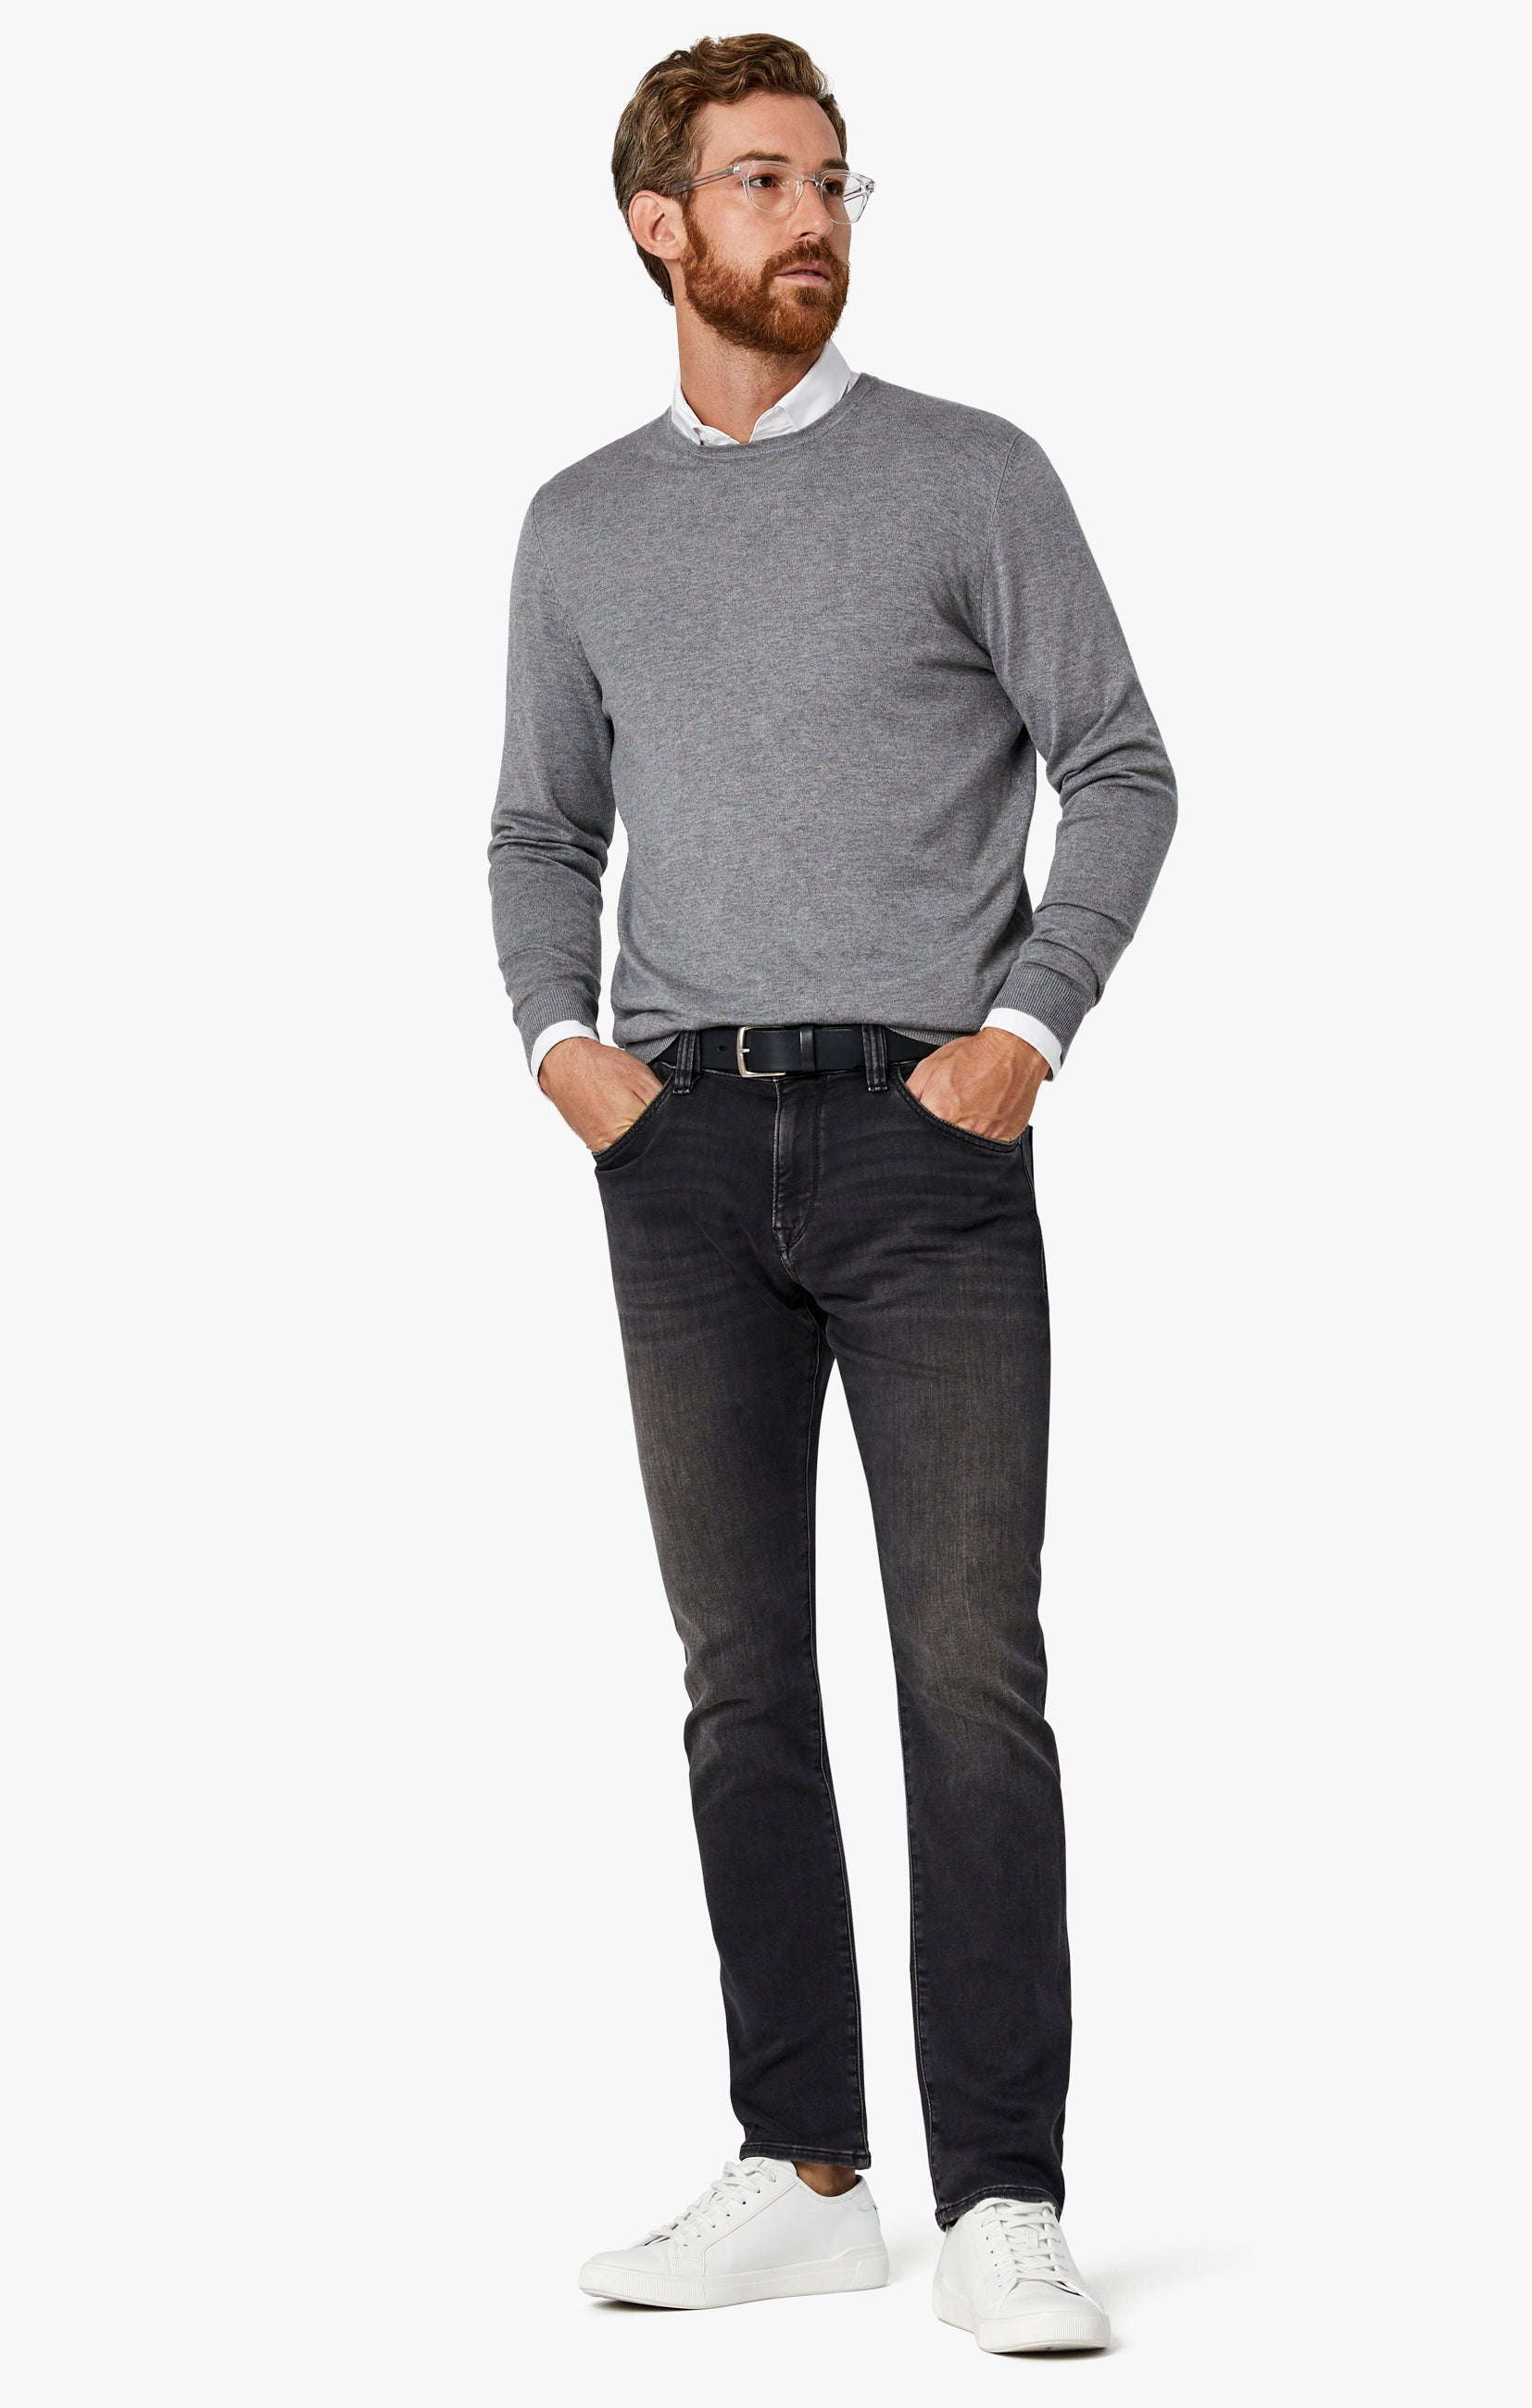 Courage Straight Leg Jeans in Mid Smoke Smart Casual Image 3